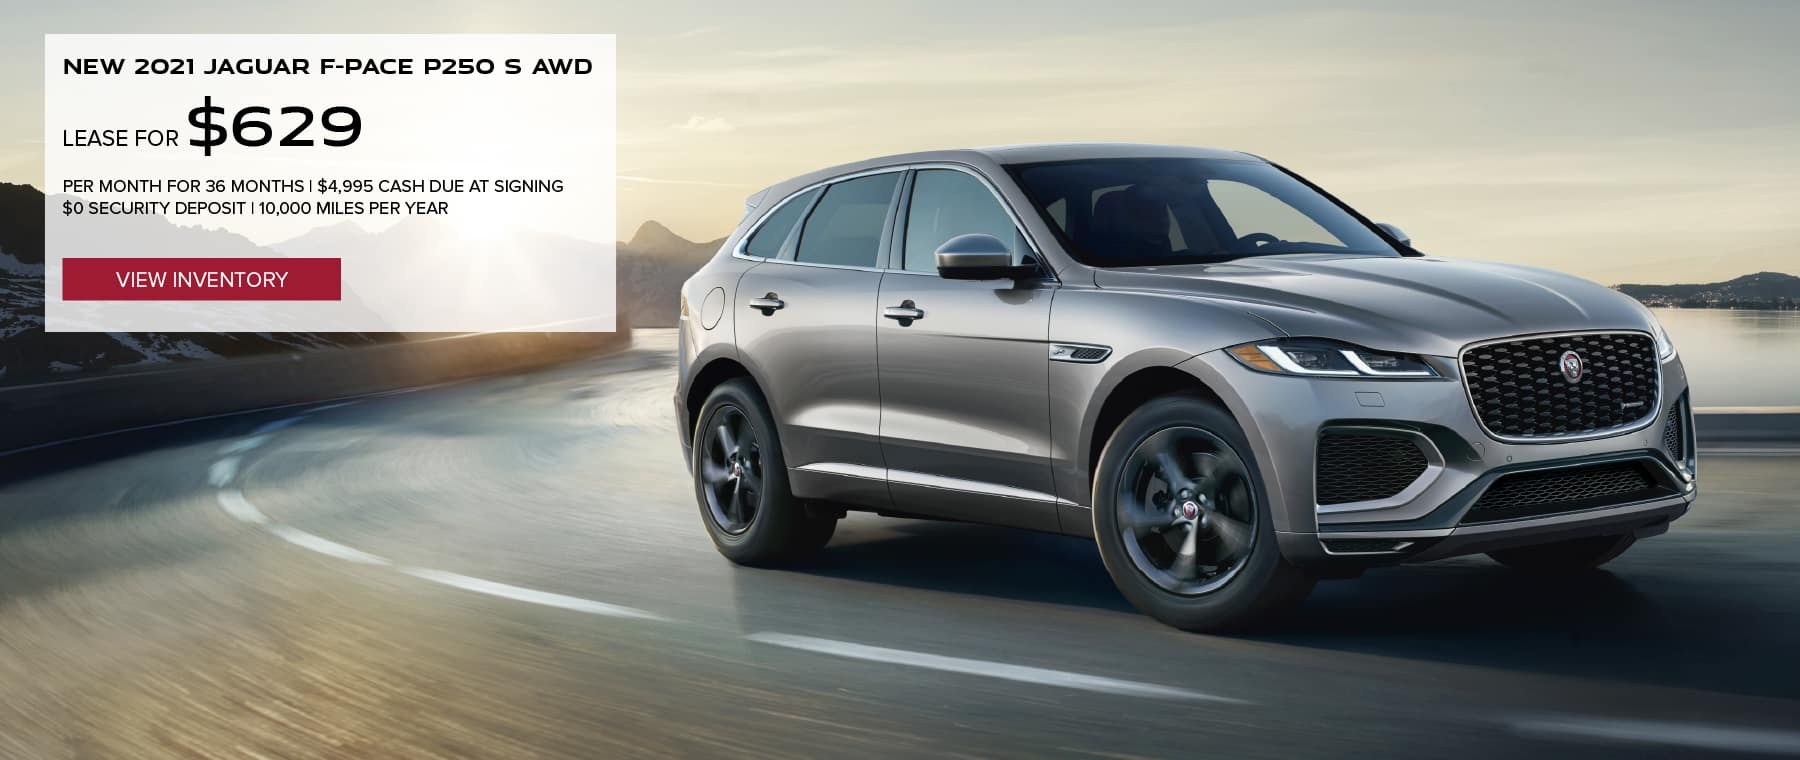 NEW 2021 JAGUAR F-PACE P250 S AWD. $629 PER MONTH. 36 MONTH LEASE TERM. $4,995 CASH DUE AT SIGNING. $0 SECURITY DEPOSIT. 10,000 MILES PER YEAR. EXCLUDES RETAILER FEES, TAXES, TITLE AND REGISTRATION FEES, PROCESSING FEE AND ANY EMISSION TESTING CHARGE. OFFER ENDS 8/2/2021. VIEW INVENTORY. SILVER JAGUAR F-PACE DRIVING THROUGH DESERT.